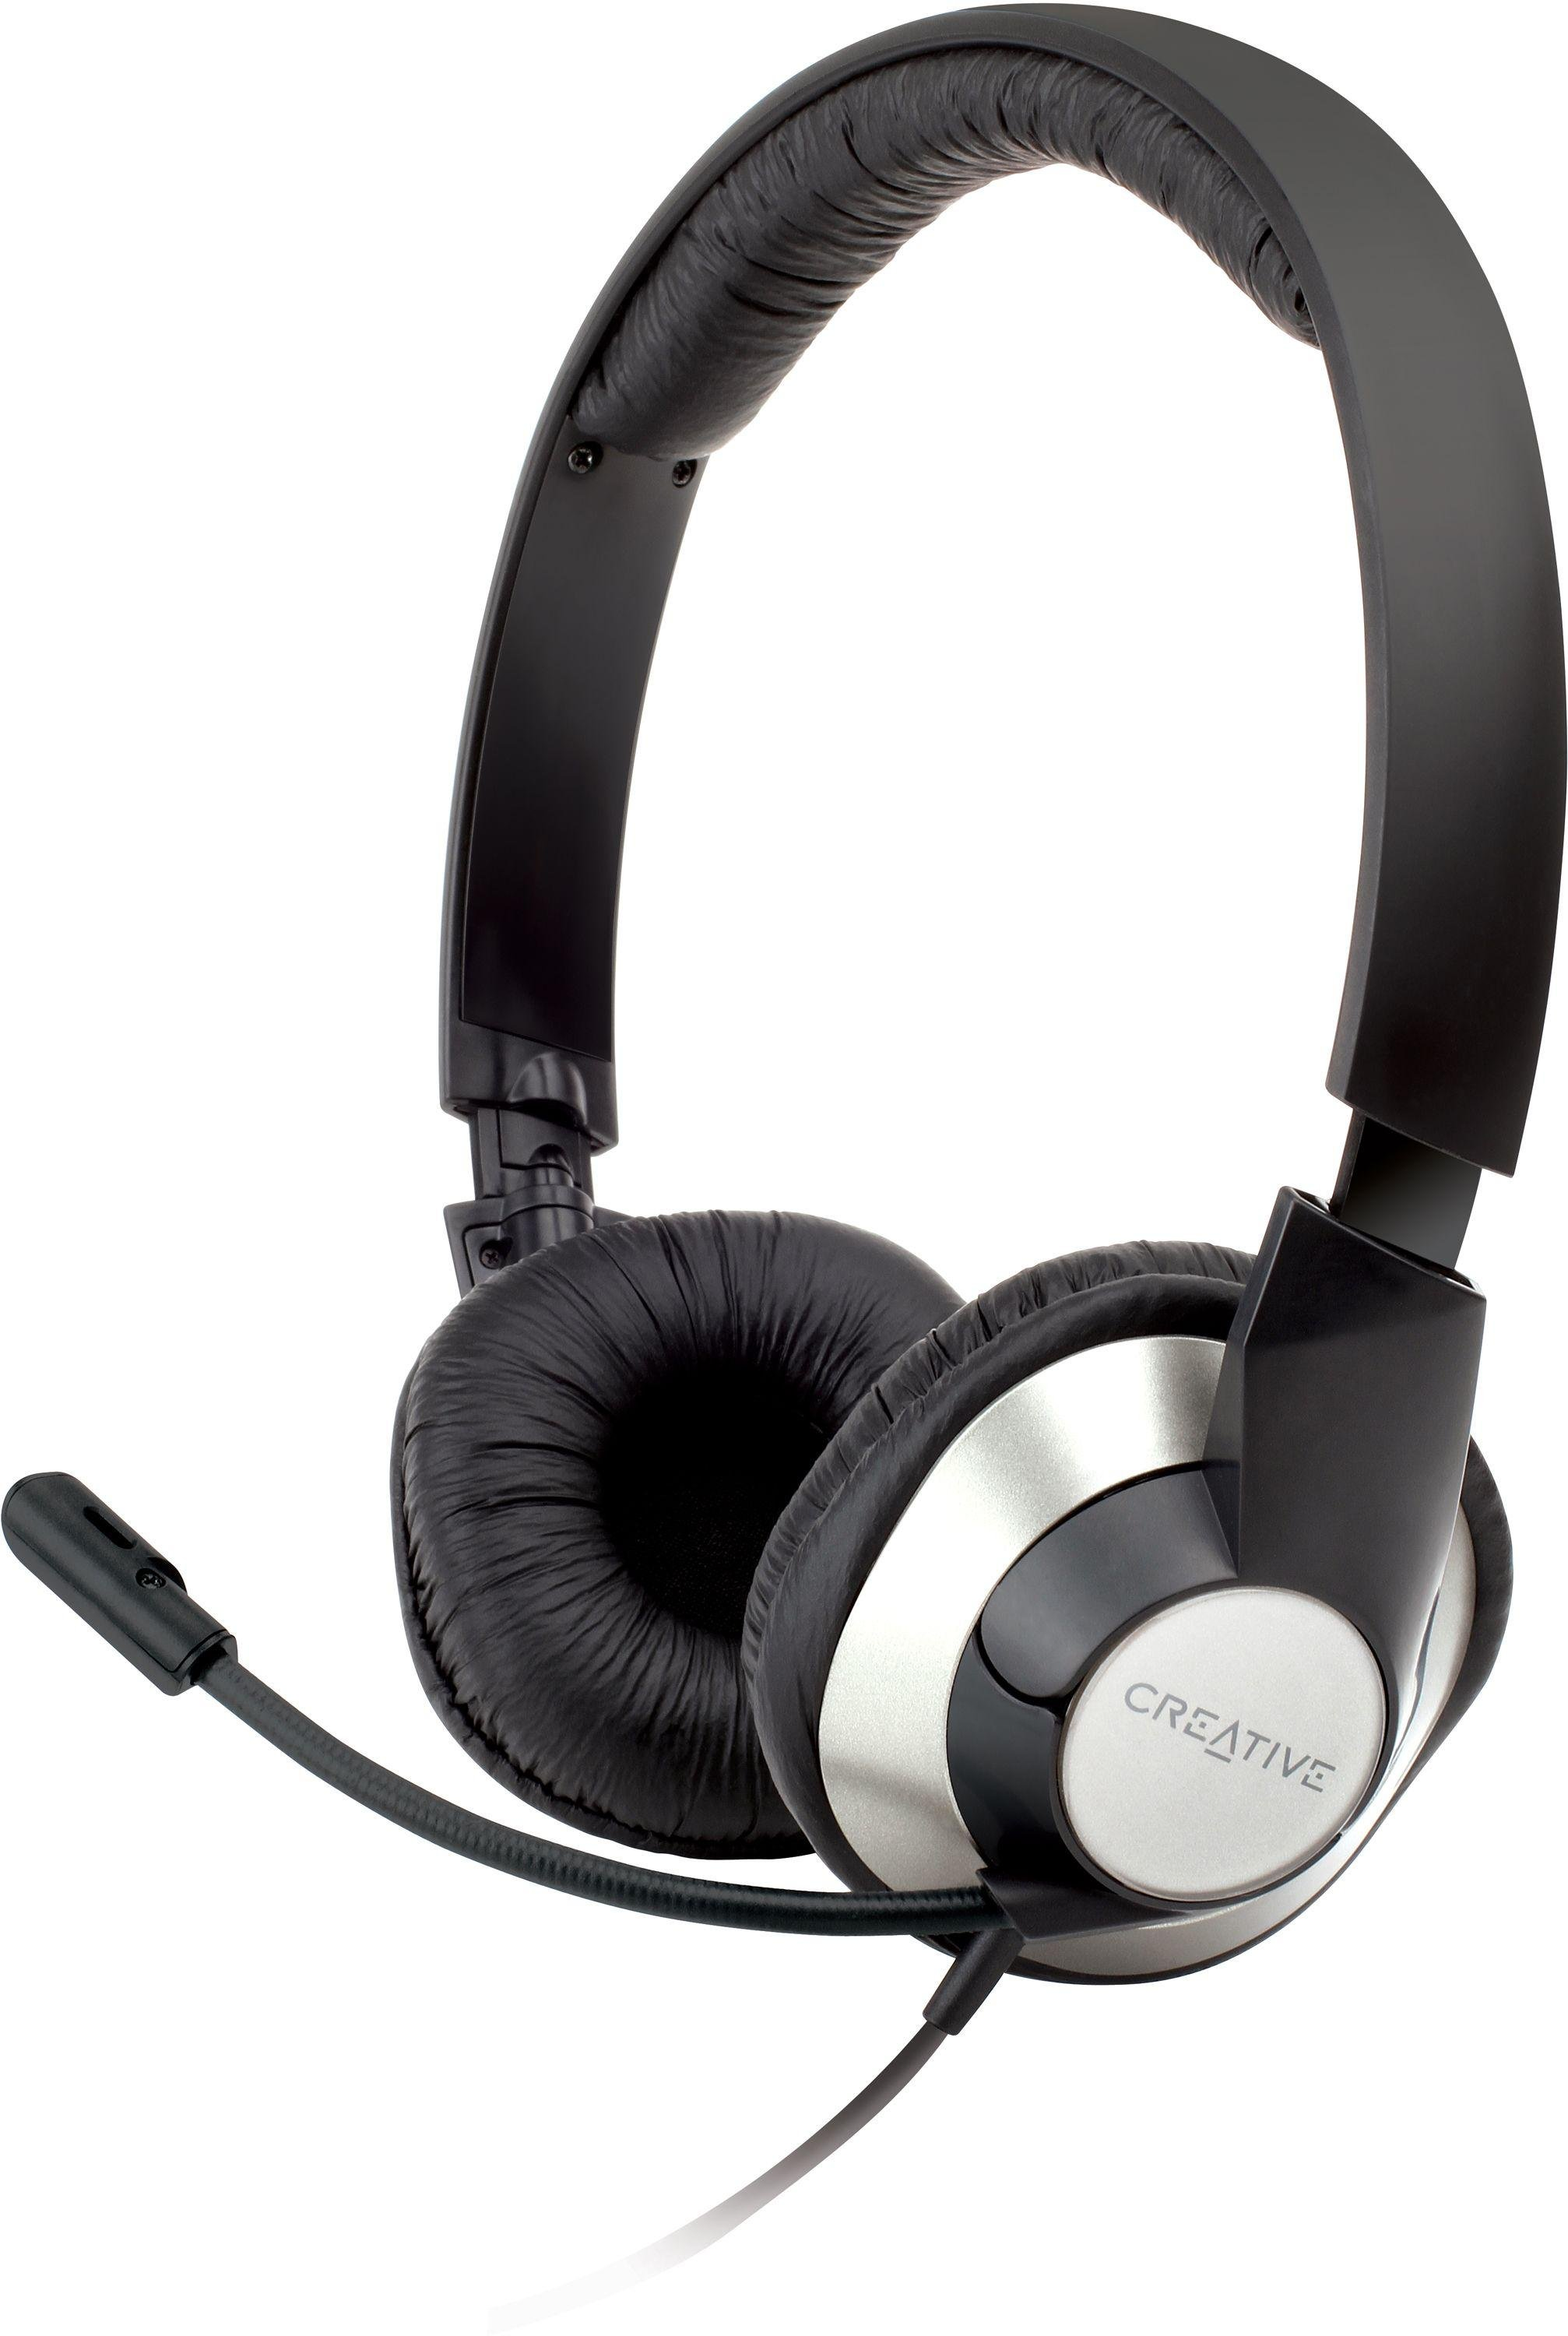 Image of Creative Chatmax HS720 USB Headset